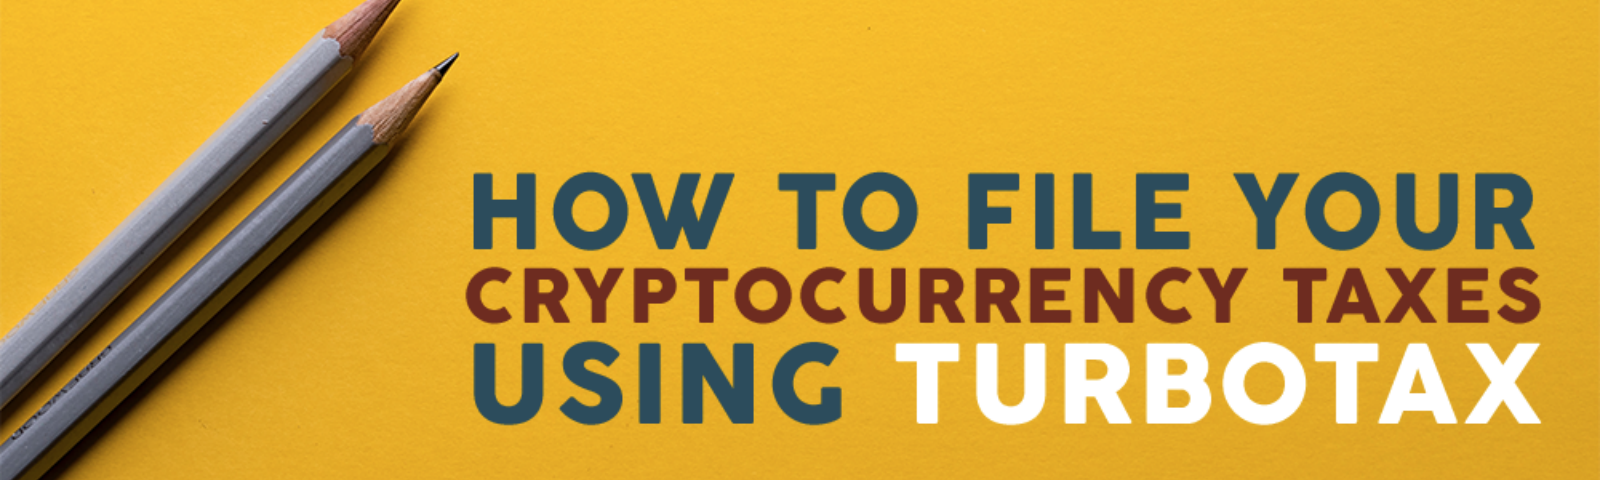 file cryptocurrency taxes turbotax